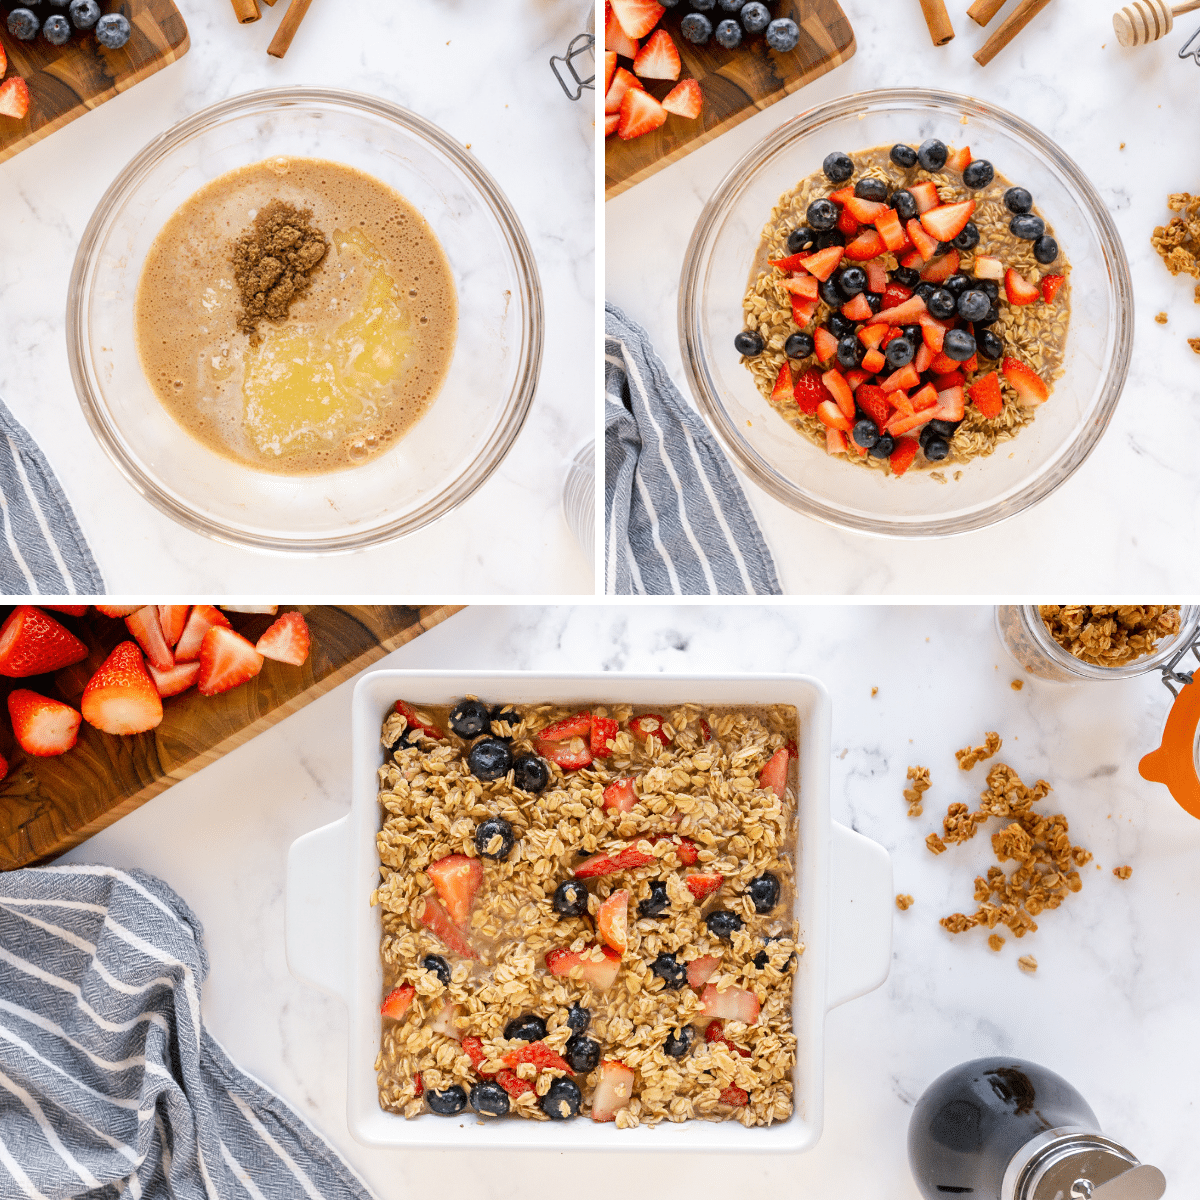 process of making berry baked oatmeal